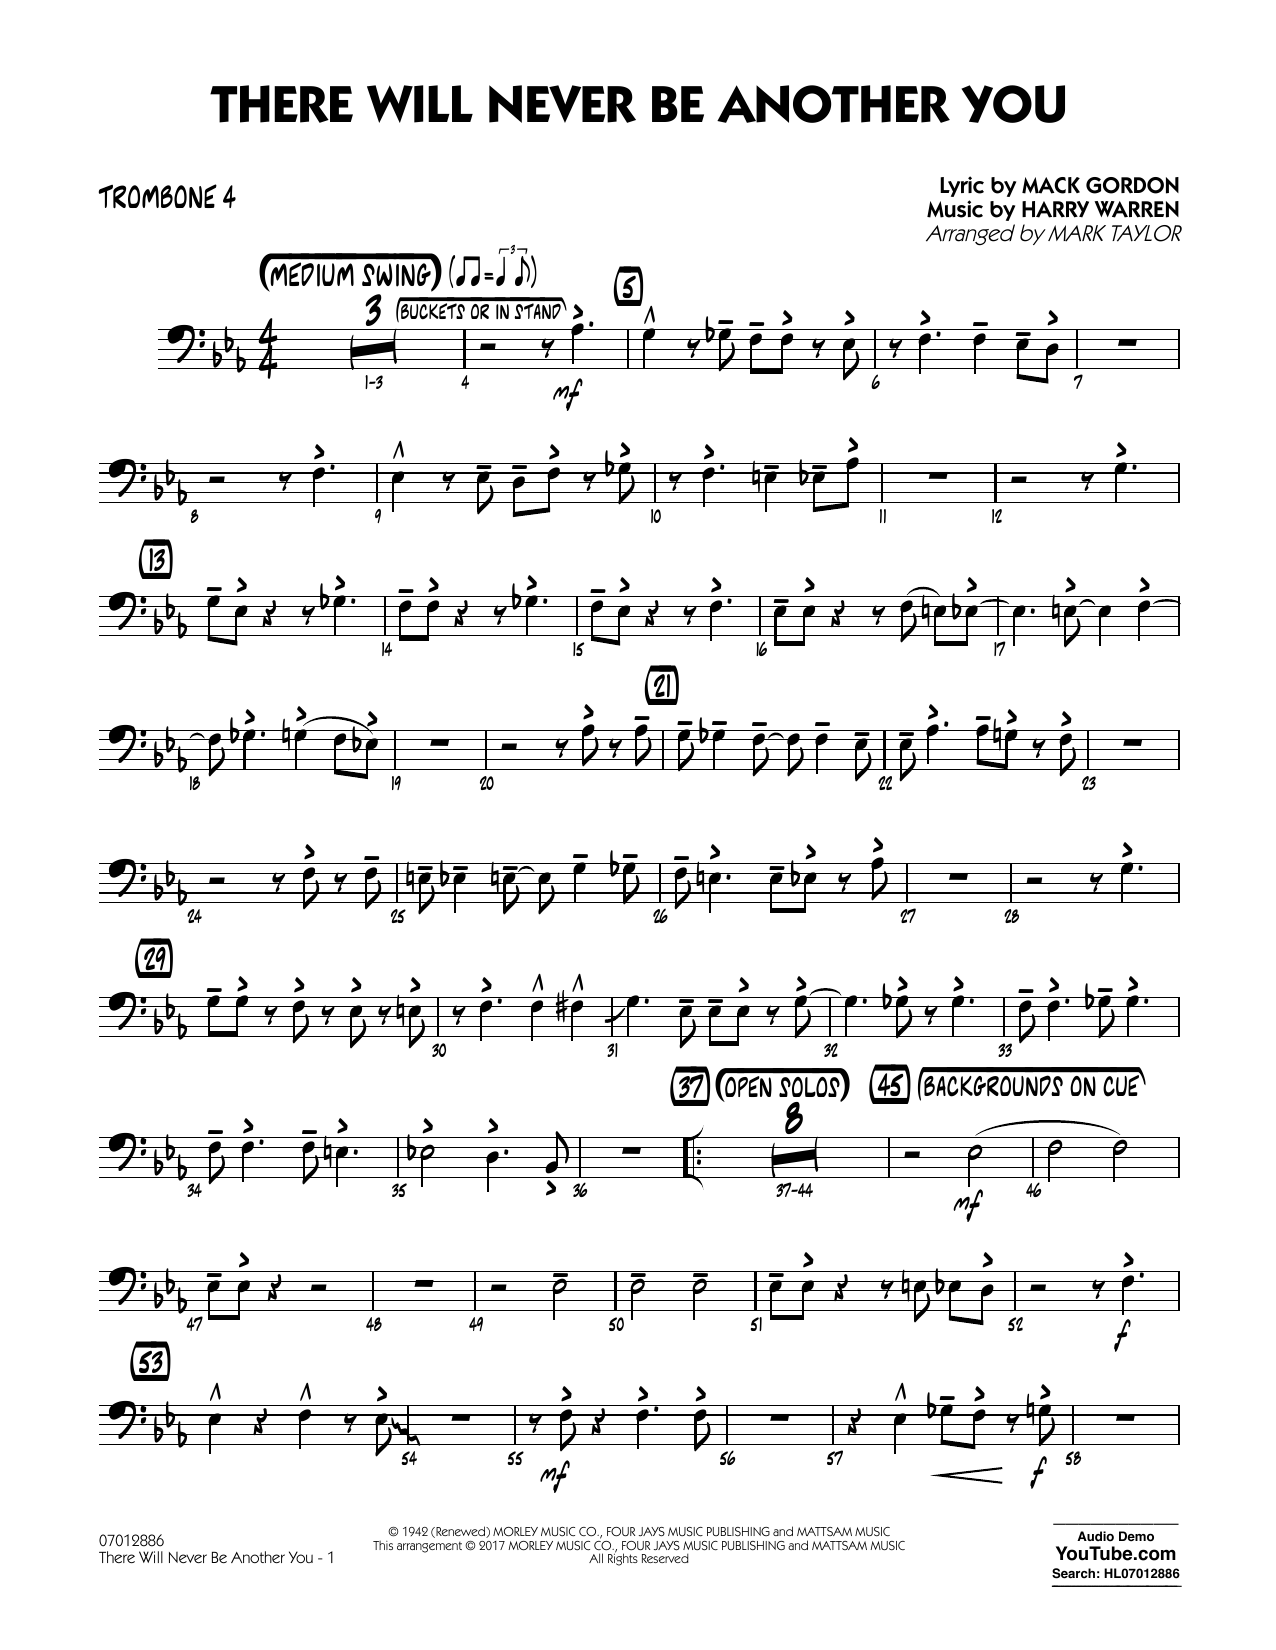 There Will Never Be Another You - Trombone 4 Sheet Music